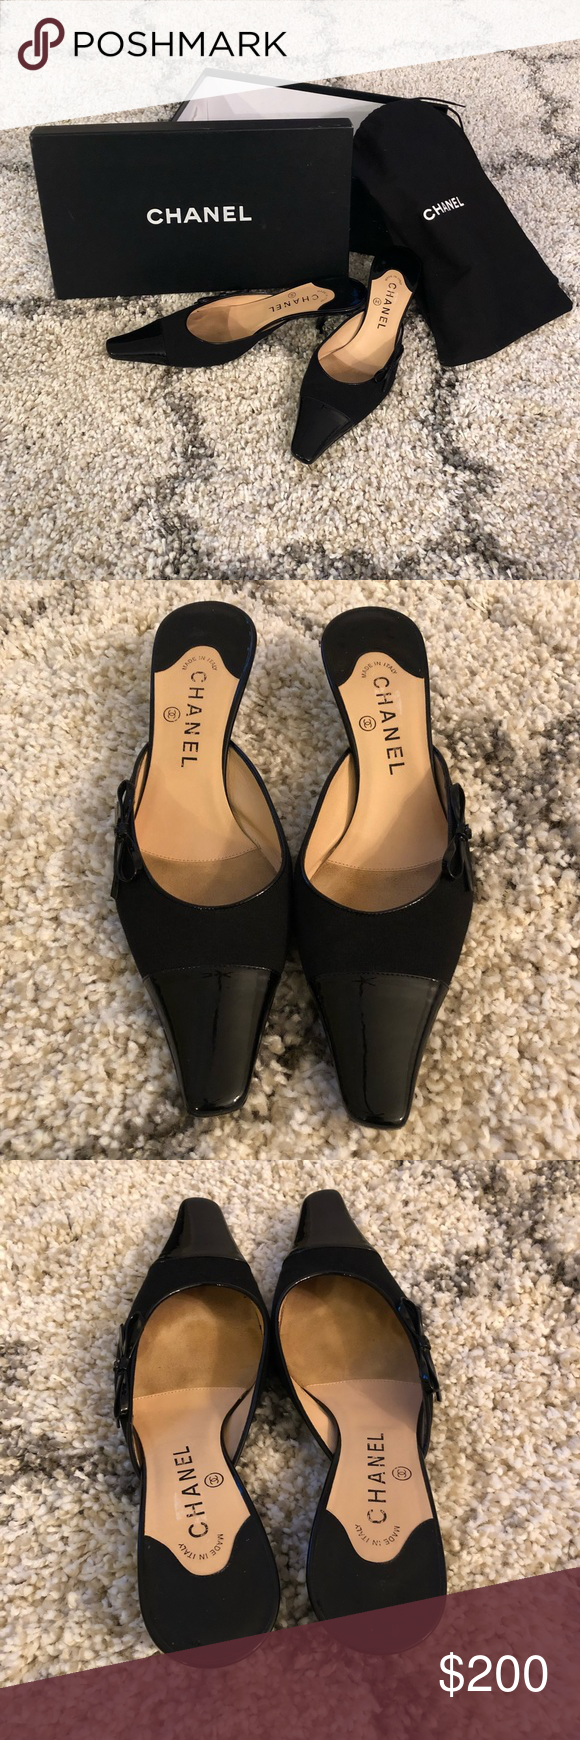 09084d3a87 Chanel kitten heel pointy toe mules 39 These are about as chic as they get!  Absolutely adorable Chanel pointy toe mules in a size 39.